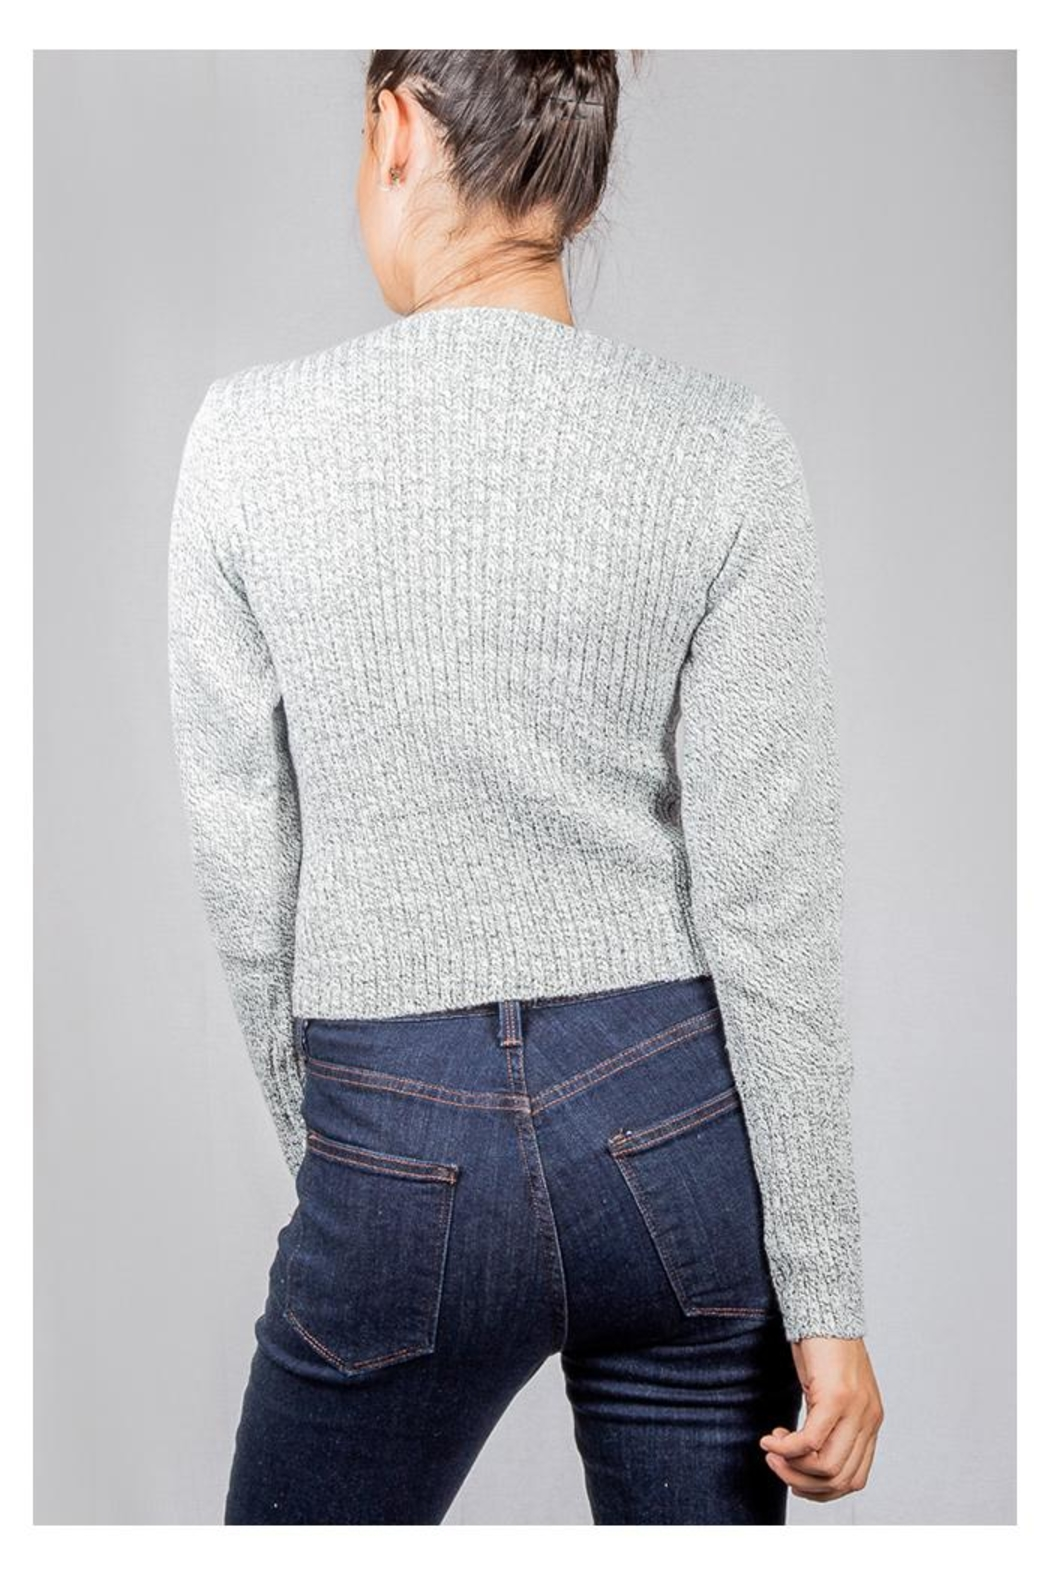 Lumiere Grey Wrap Sweater-Top - Side Cropped Image